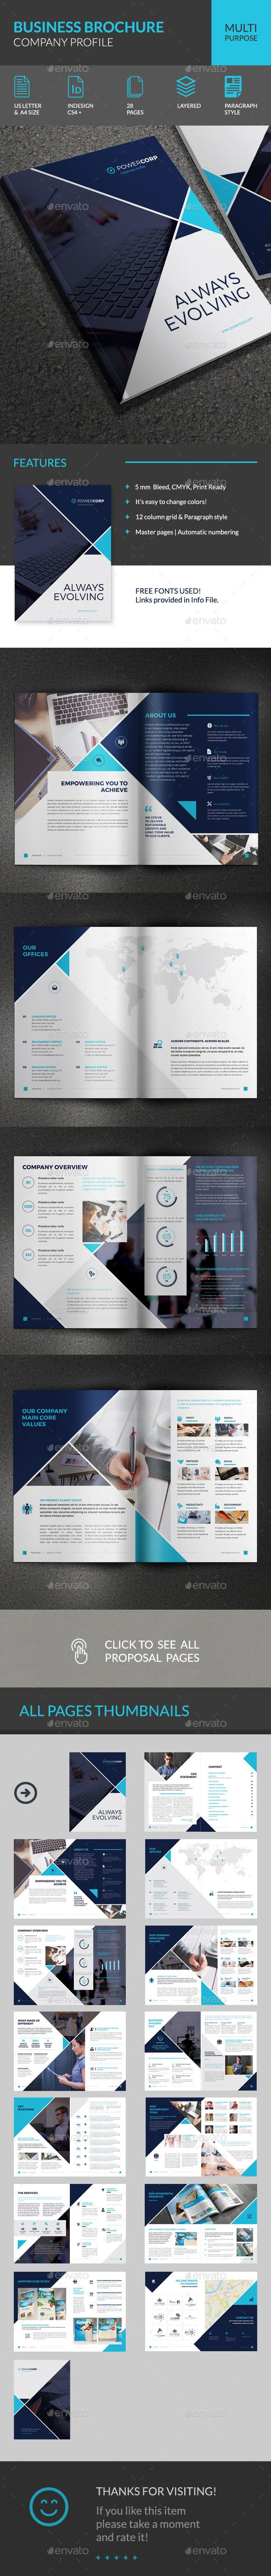 Example Of Company Profile Template Interesting Best 1030 Infographie Ideas On Pinterest  Artist Studios Drawing .